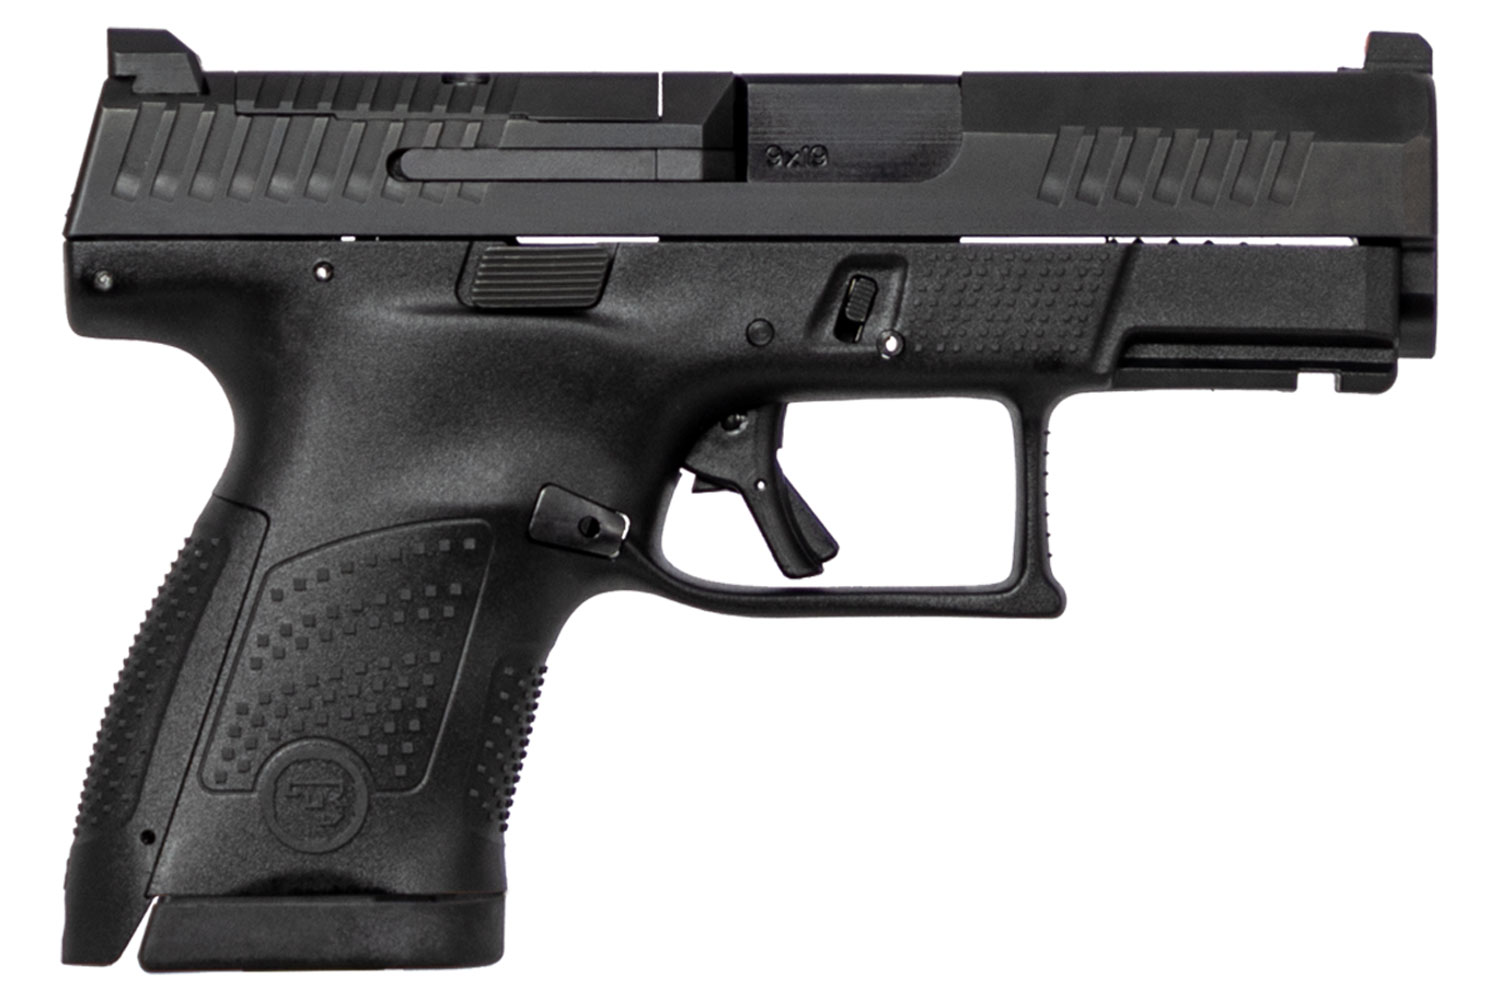 P-10 S 9MM BLK 12+1 3.5 OR US - OPTICS READY | US MADE